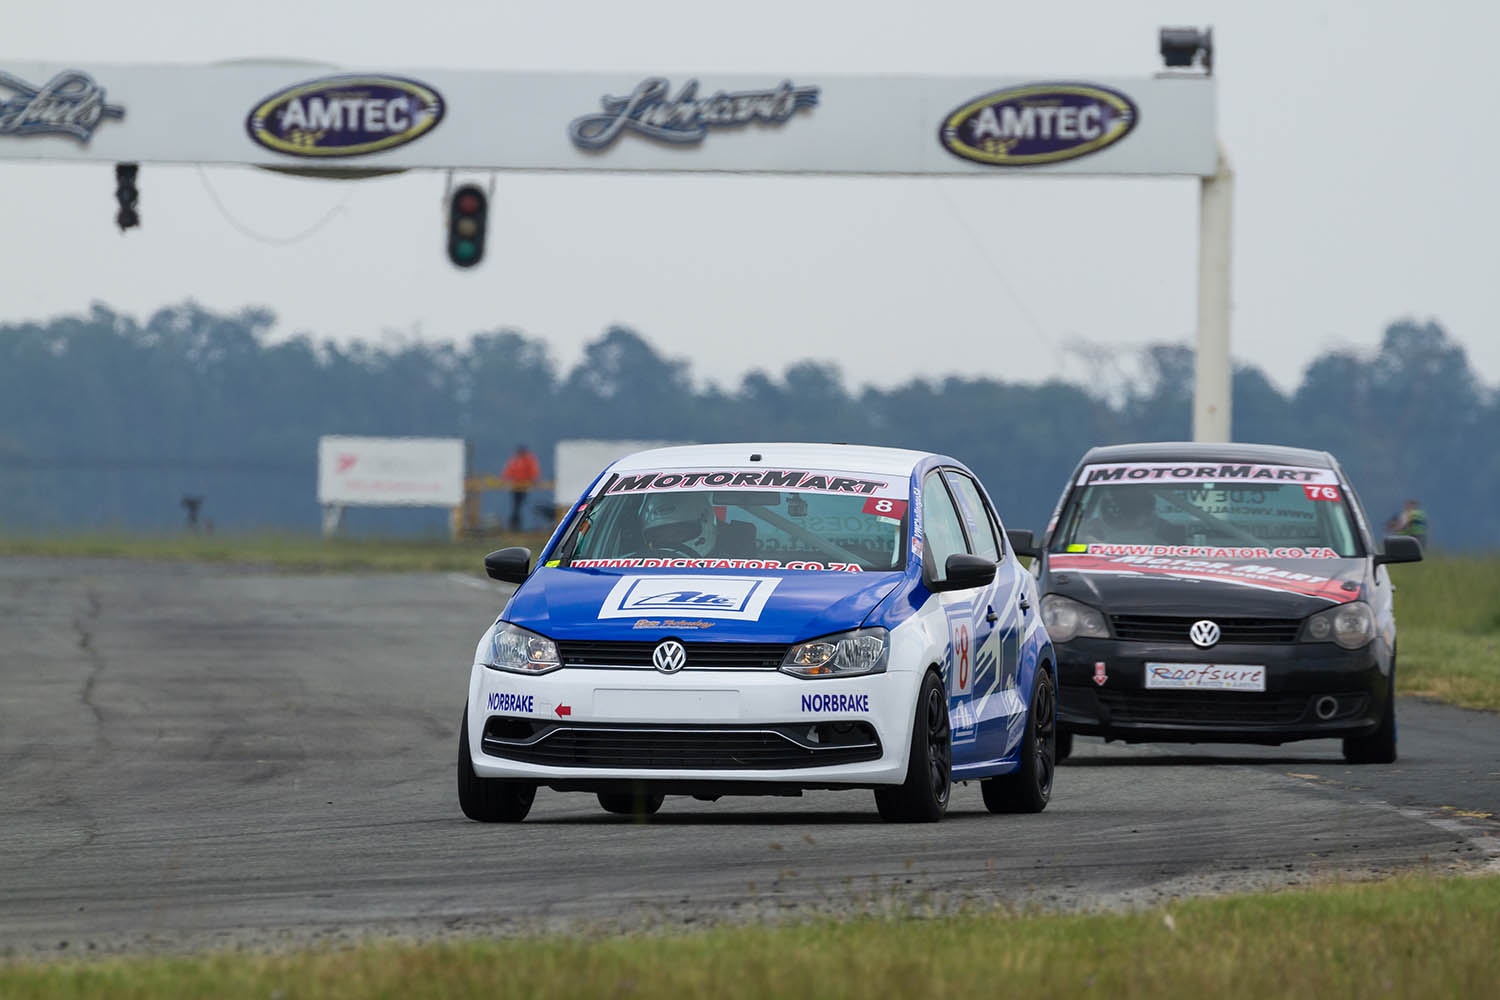 Philip Croeser and Christiaan de Wet will resume their class C duel